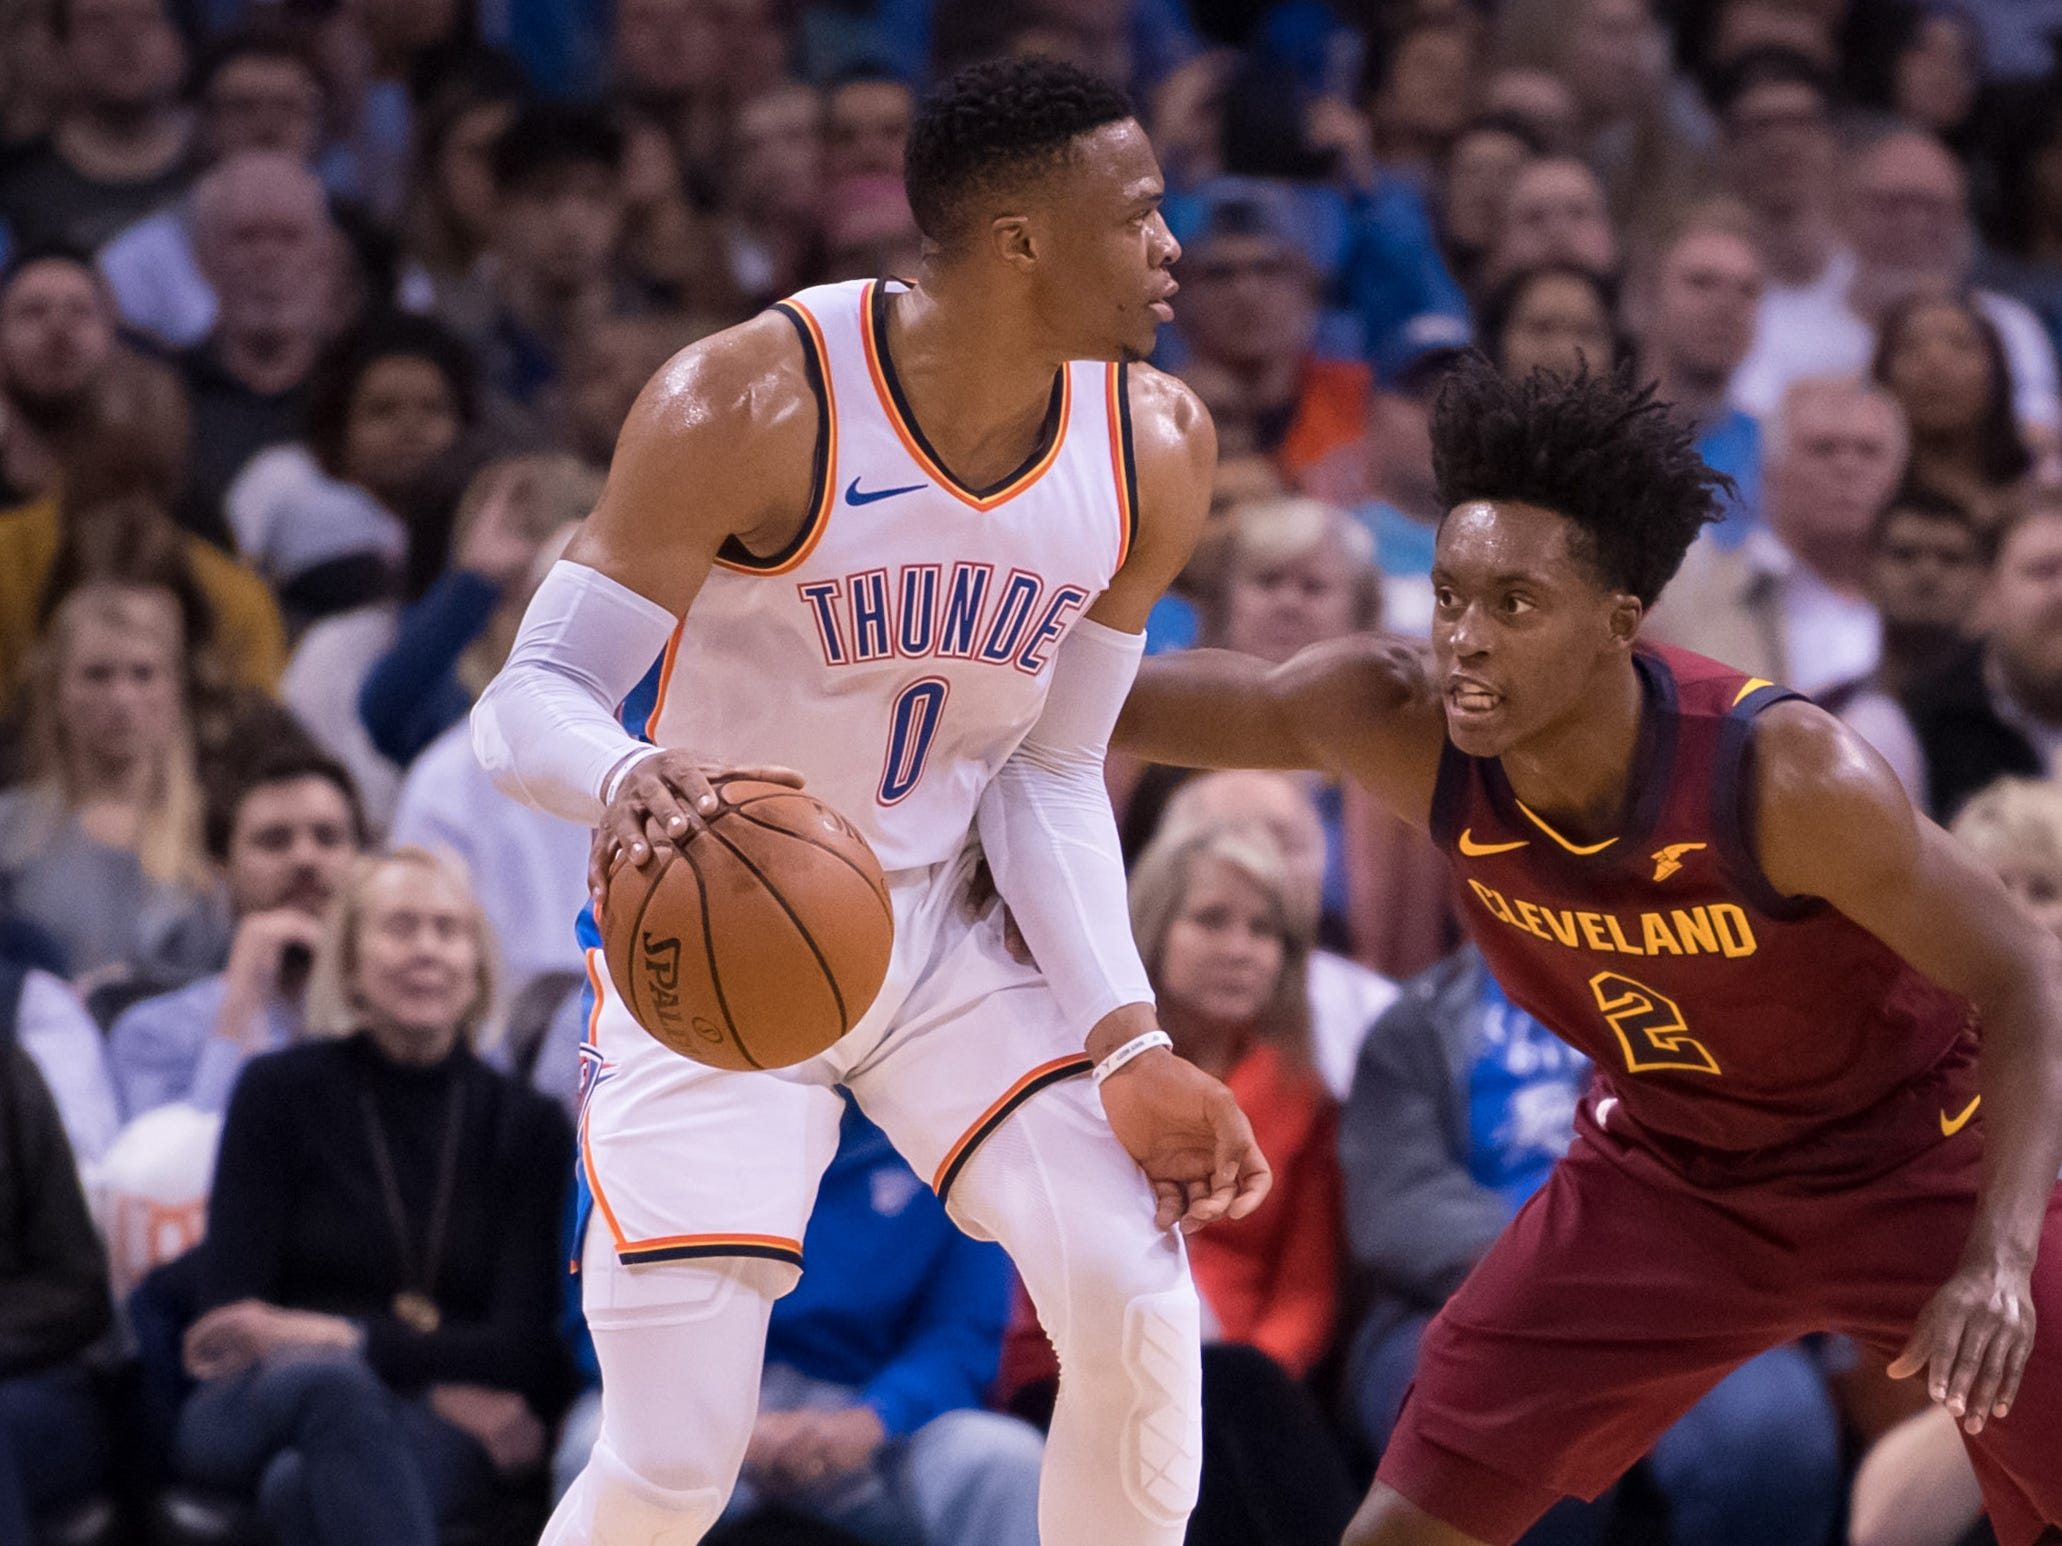 16. Russell Westbrook, Thunder (Nov. 28): 23 points, 19 rebounds, 15 assists in 100-83 win over Cavaliers (third of season).